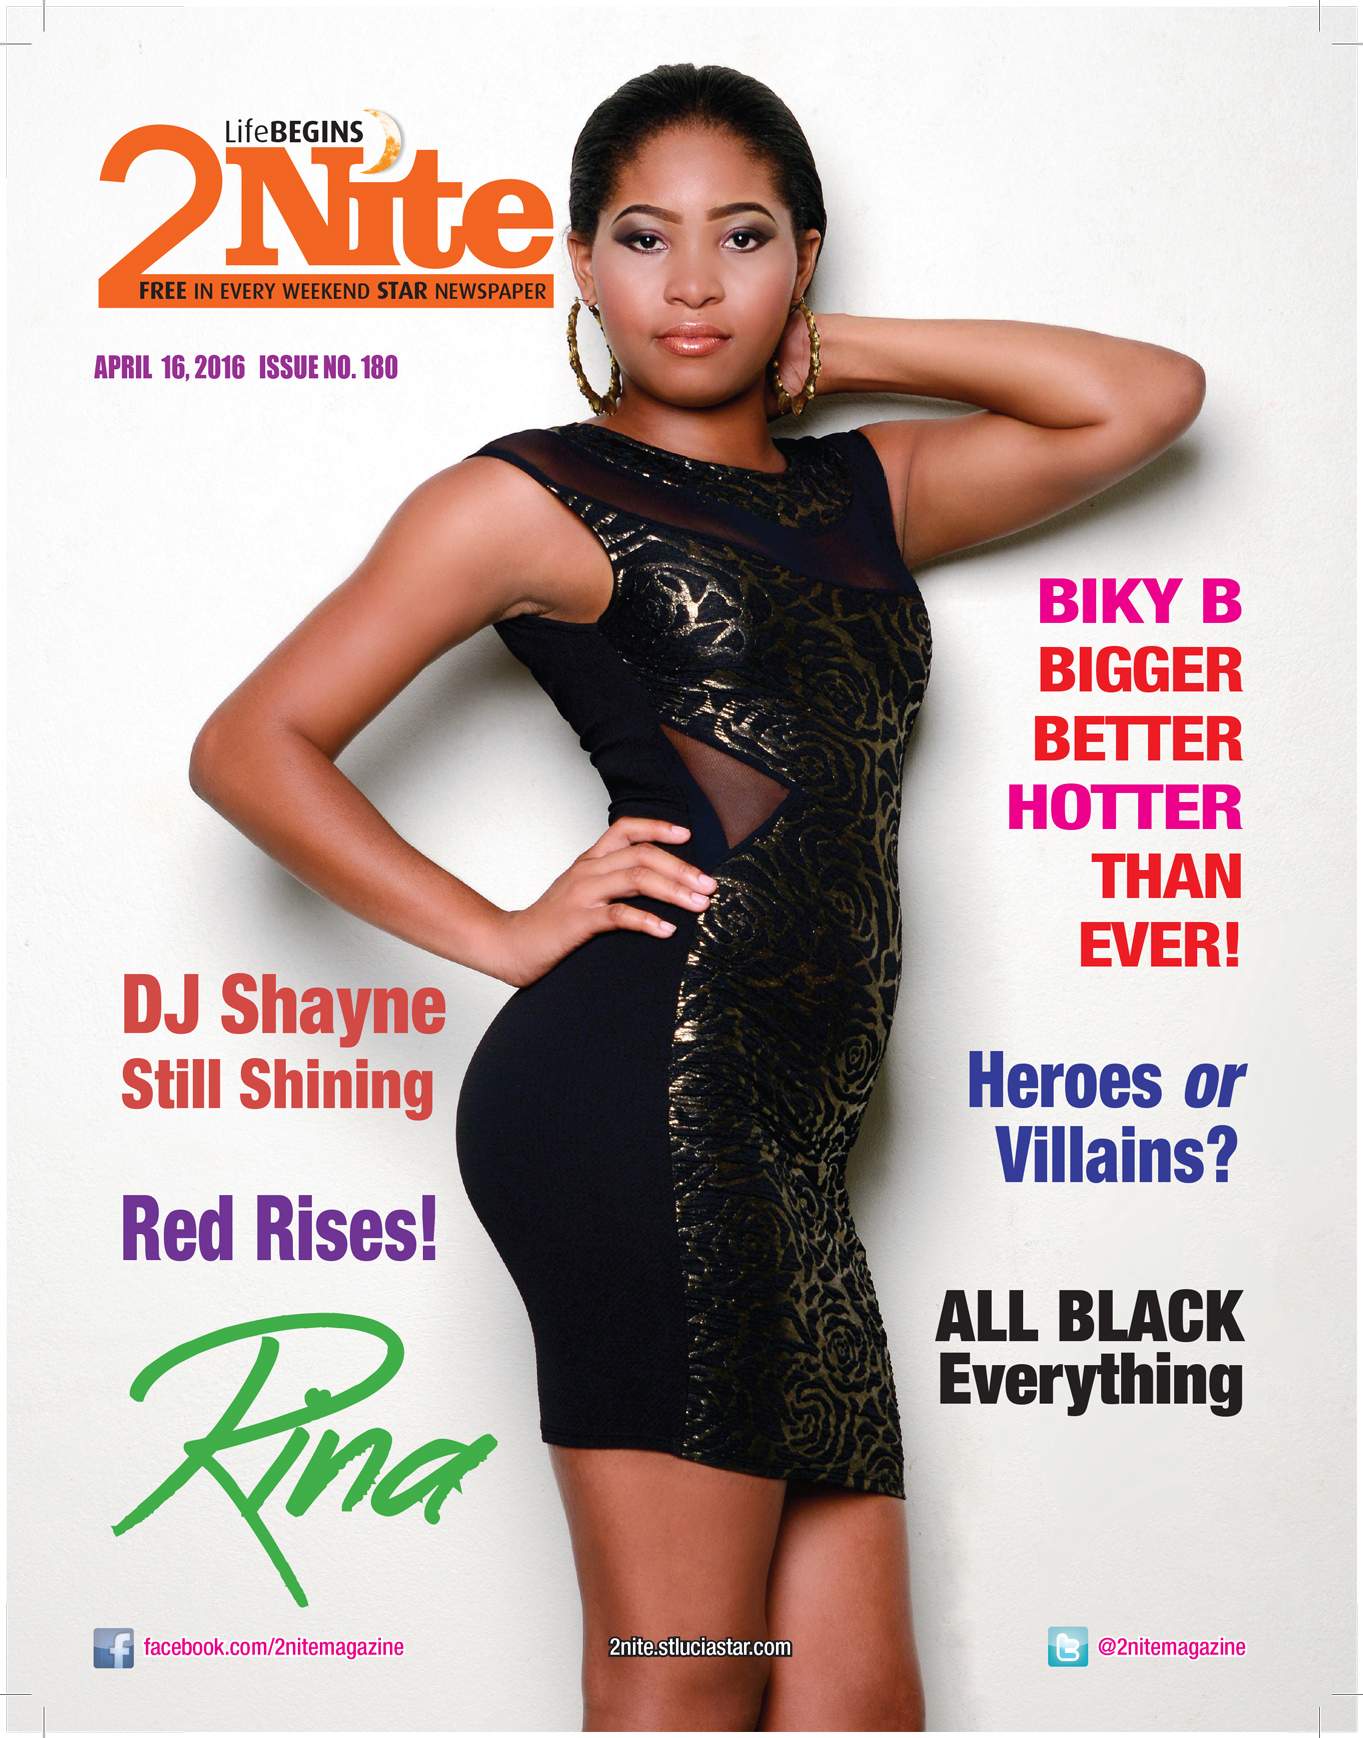 2Nite Magazine Issue no. 180 for Saturday 16th, 2016